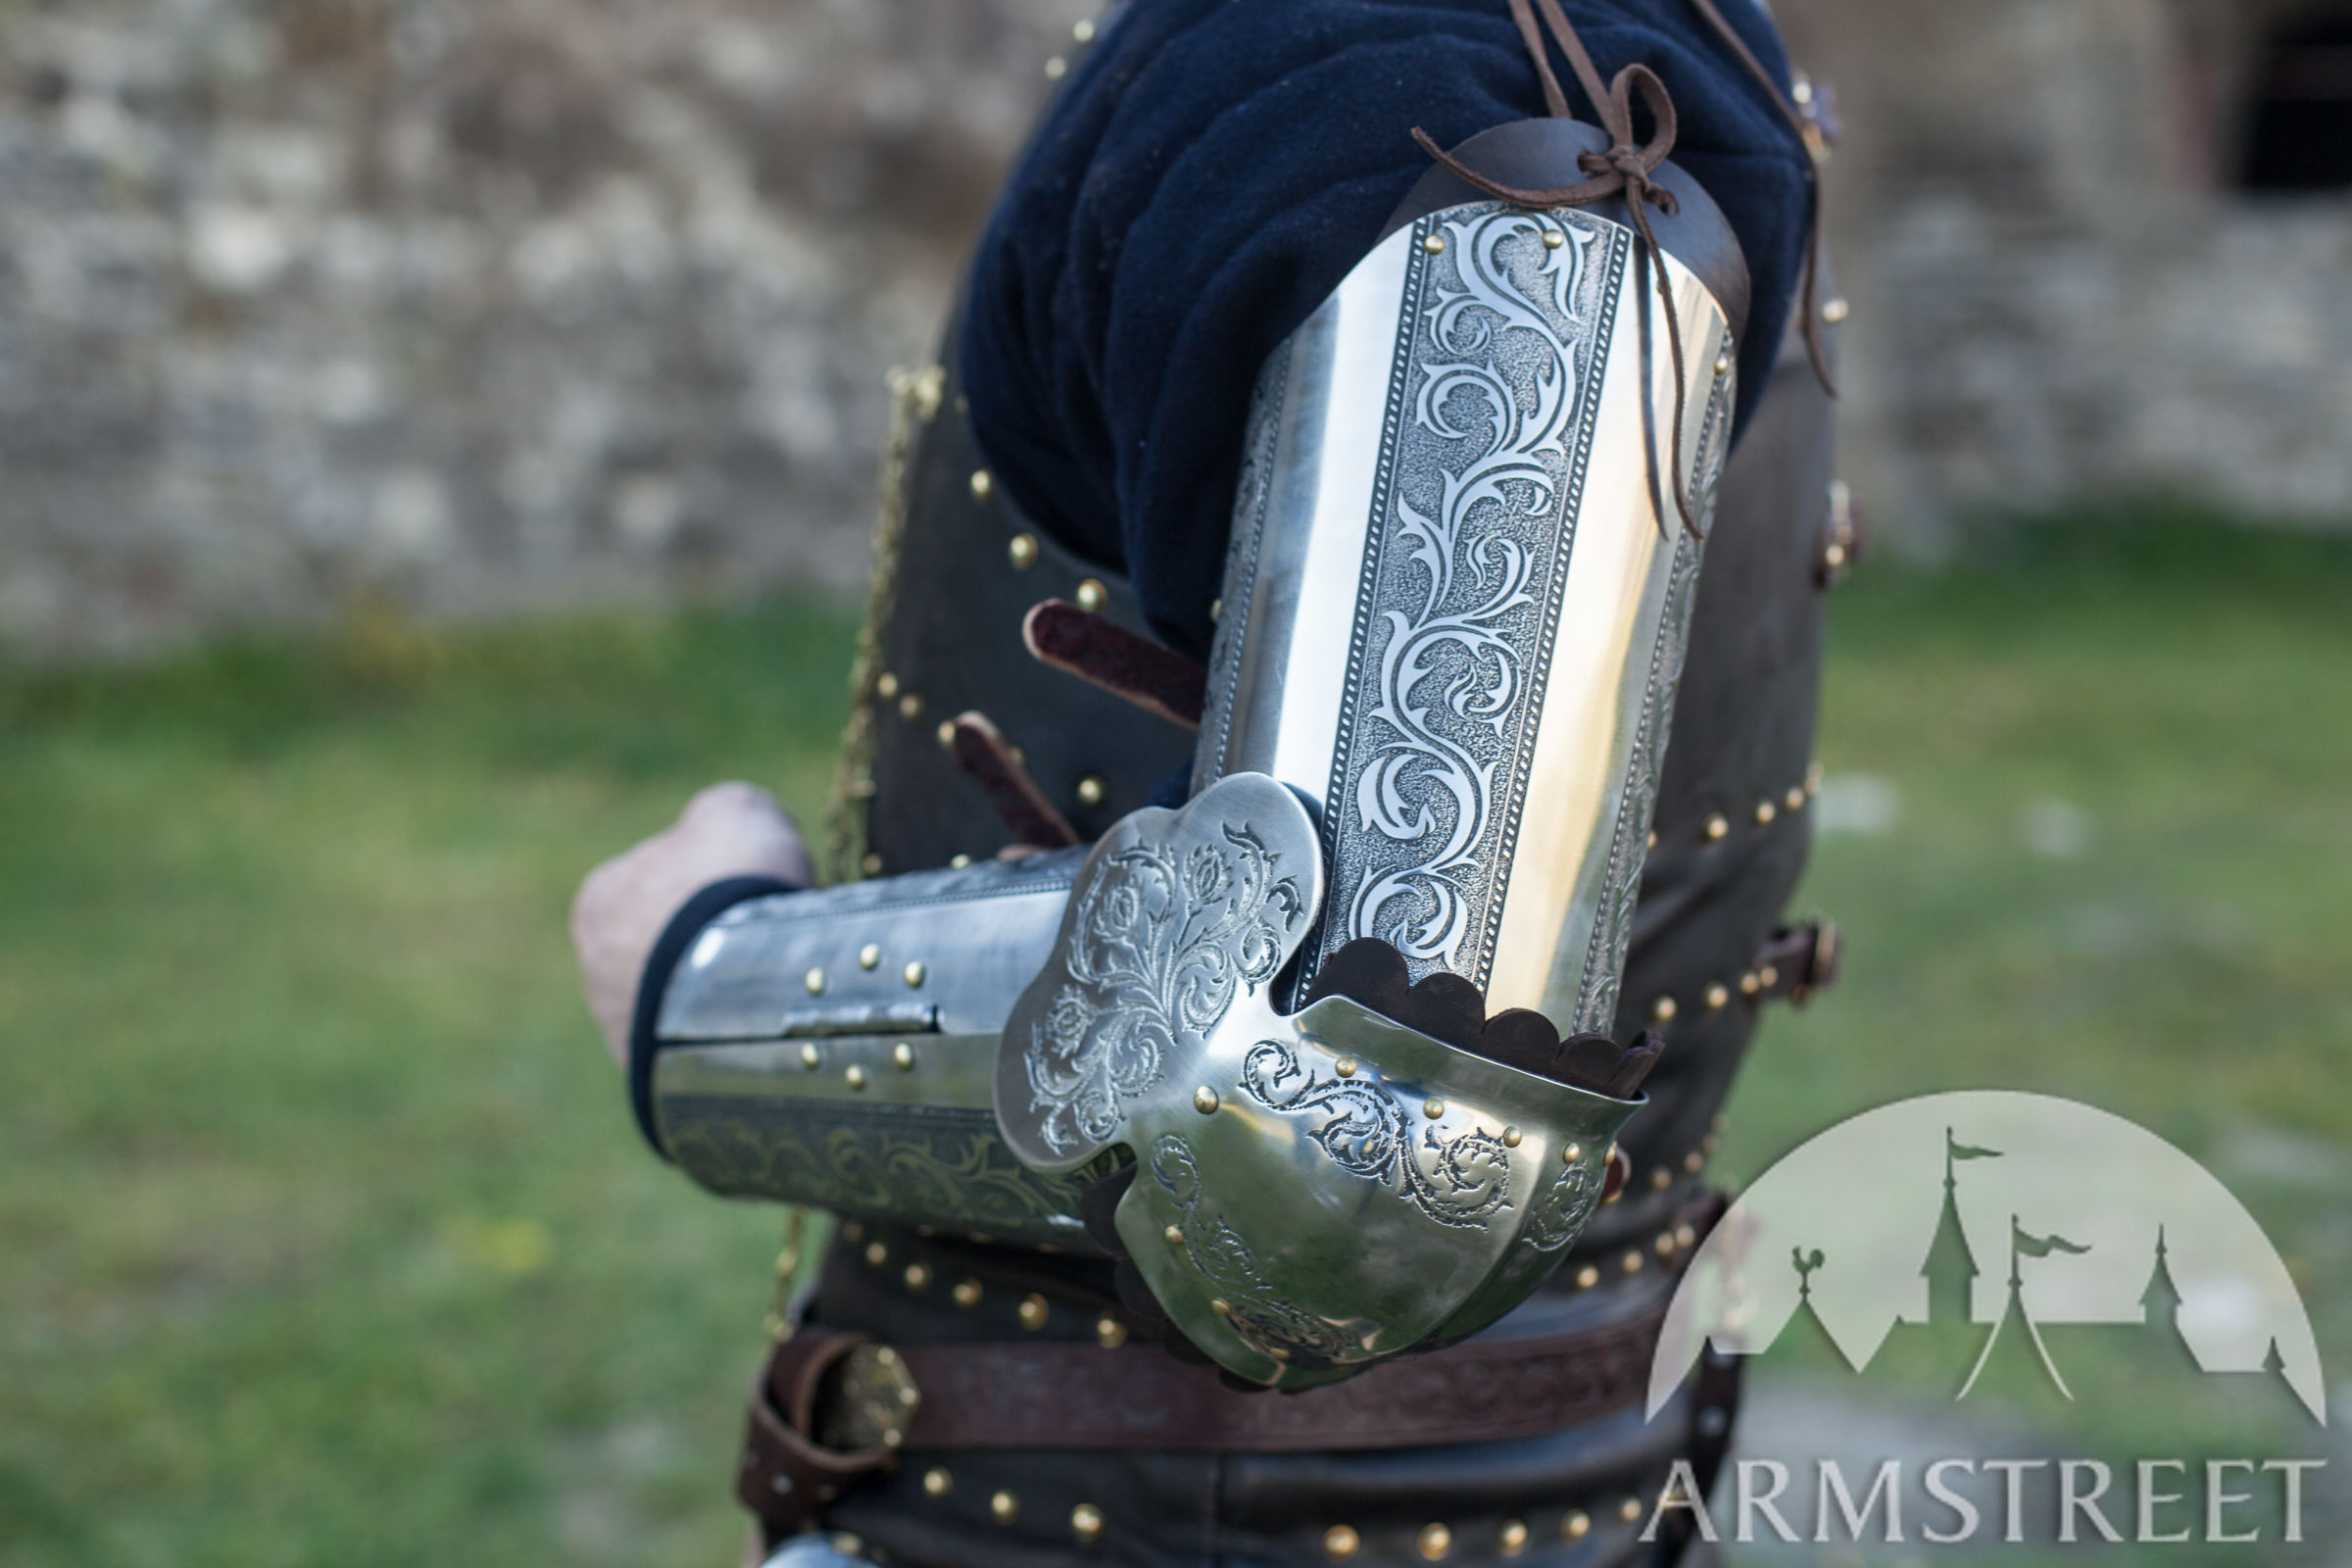 Armor Arms Quot Knight Of Fortune Quot Available In Stainless